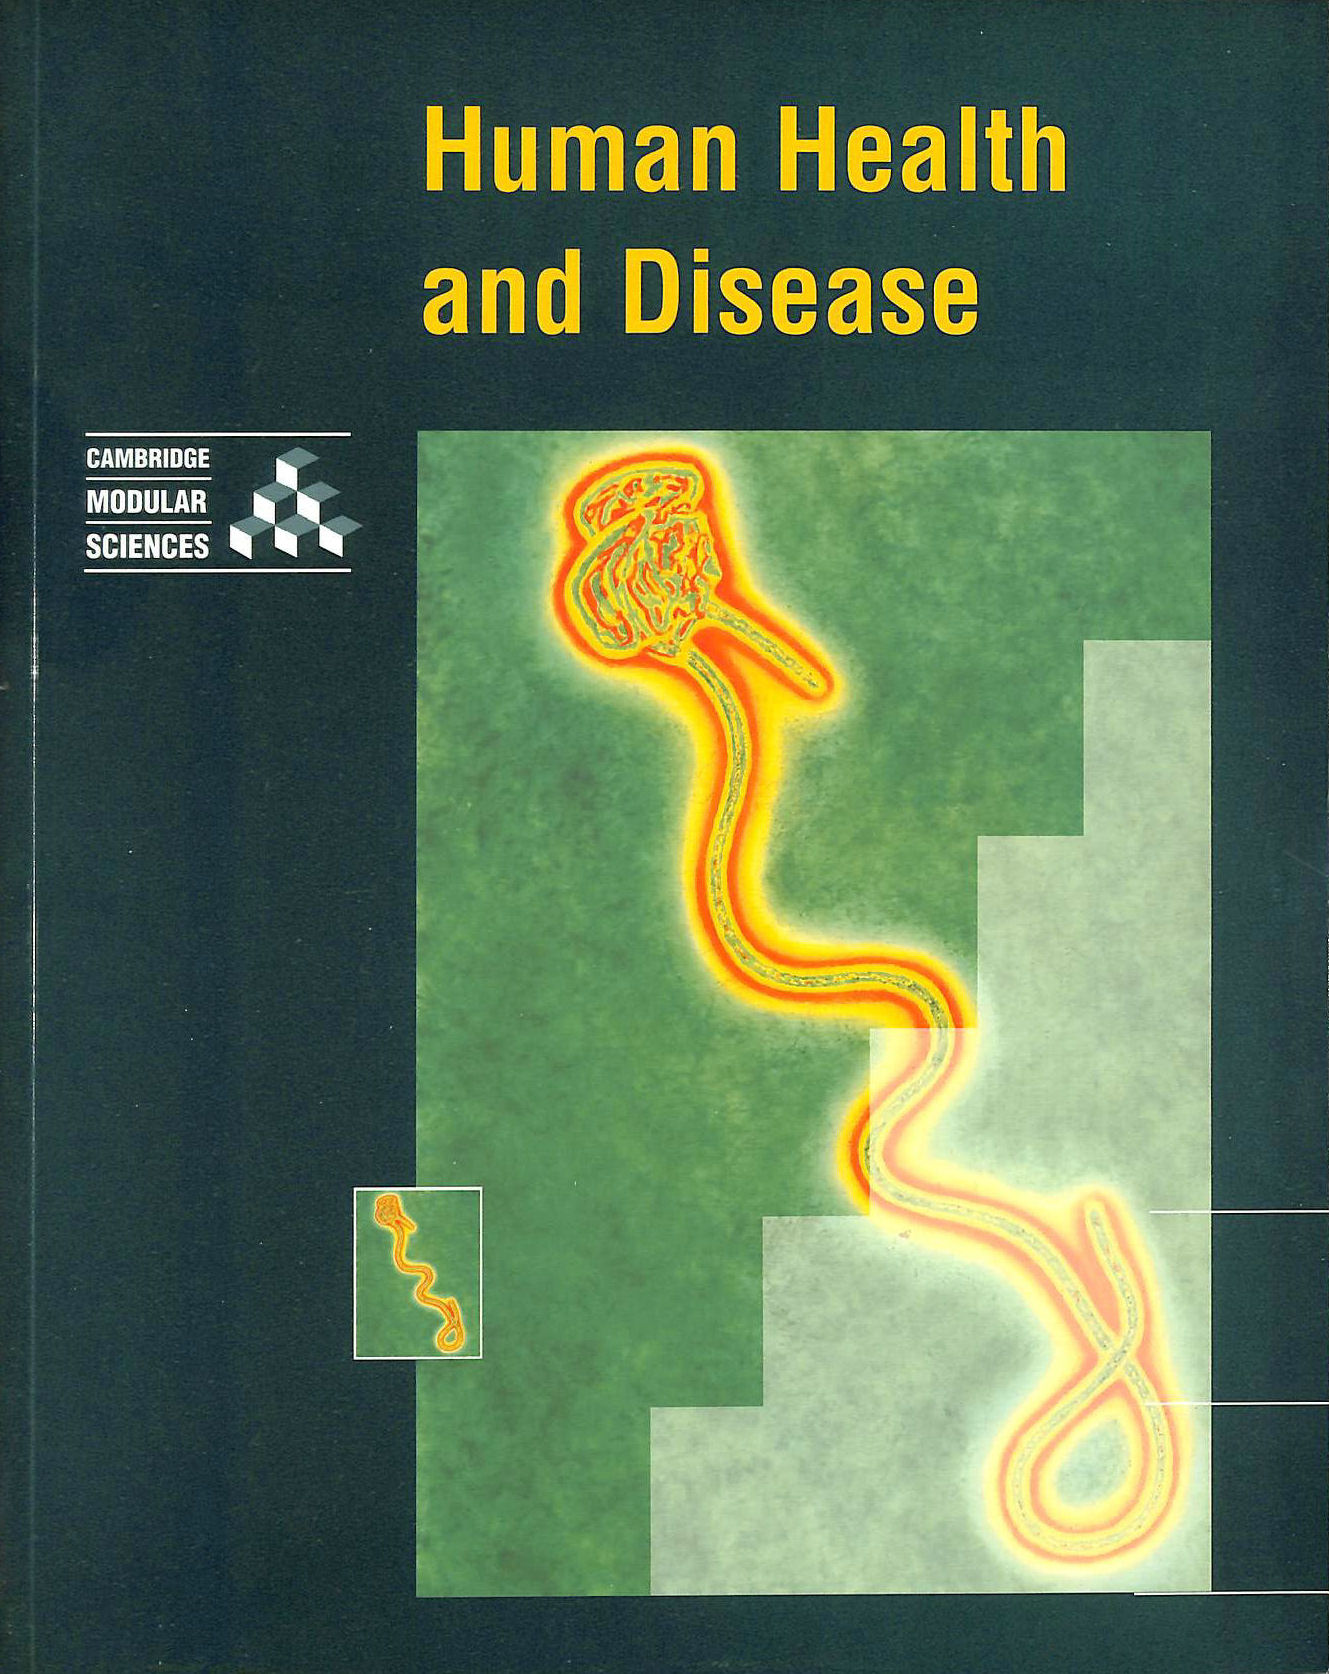 Image for Human Health and Disease (Cambridge Modular Sciences)